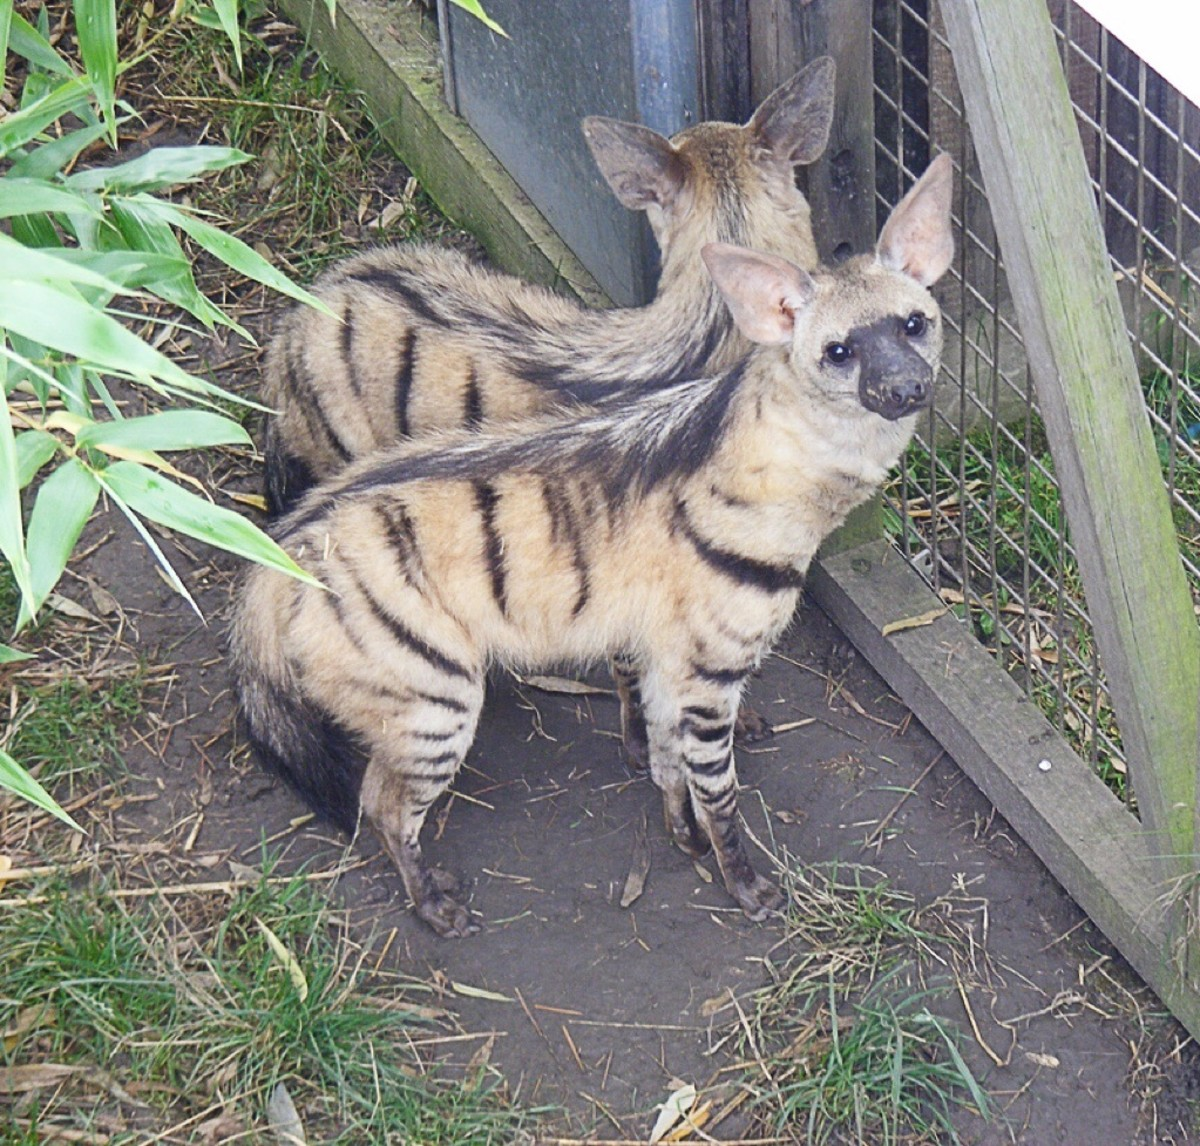 Two aardwolves photographed at the Rare Species Conservation Centre in Kent, England